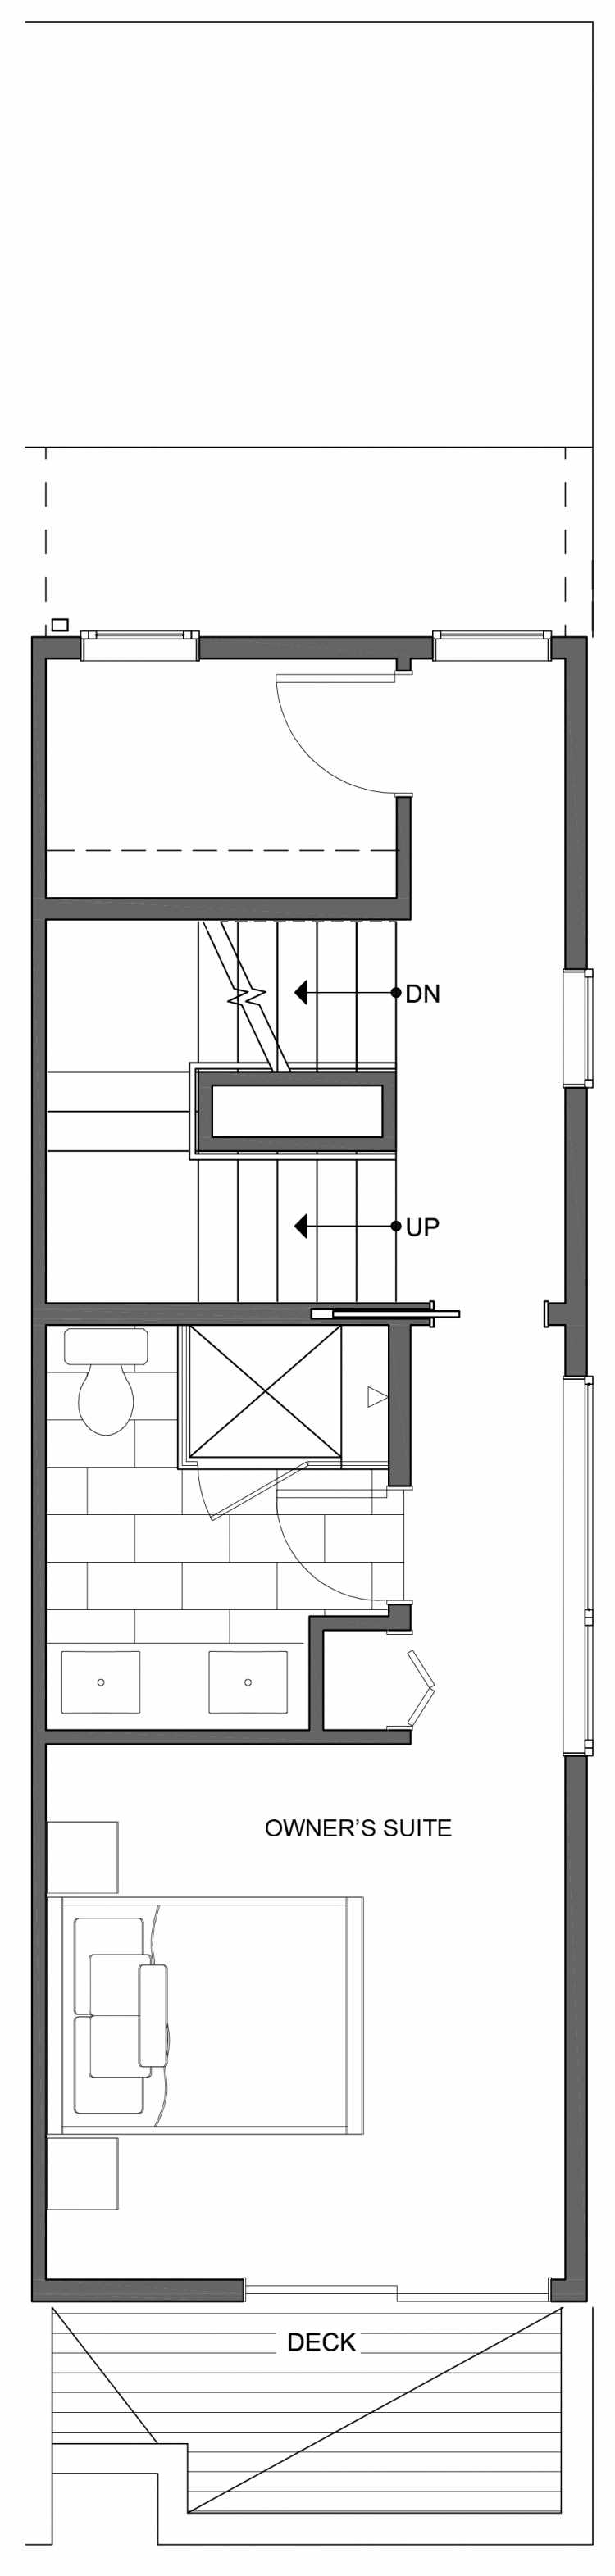 Fourth Floor Plan of 806G N 46th St, One of the Nino 15 East Townhomes by Isola Homes